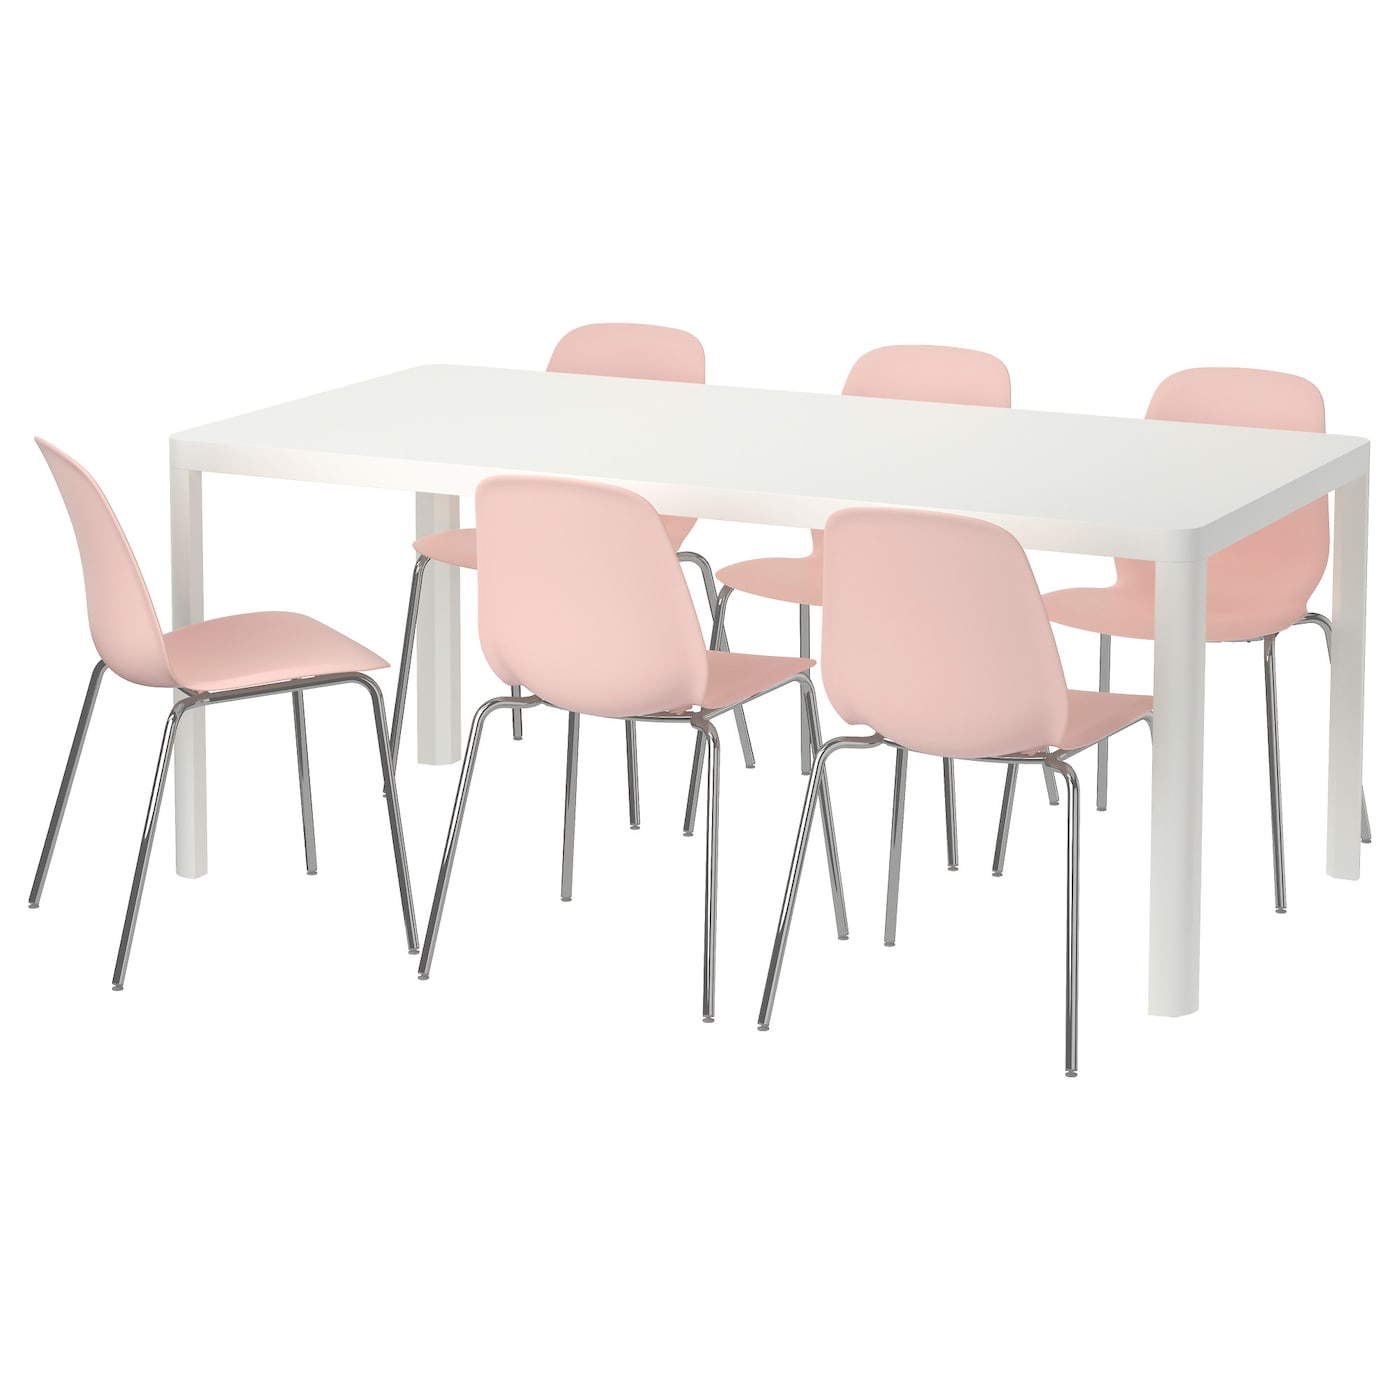 Leifarne tingby table and 6 chairs white pink 180 cm ikea for Table en pin ikea